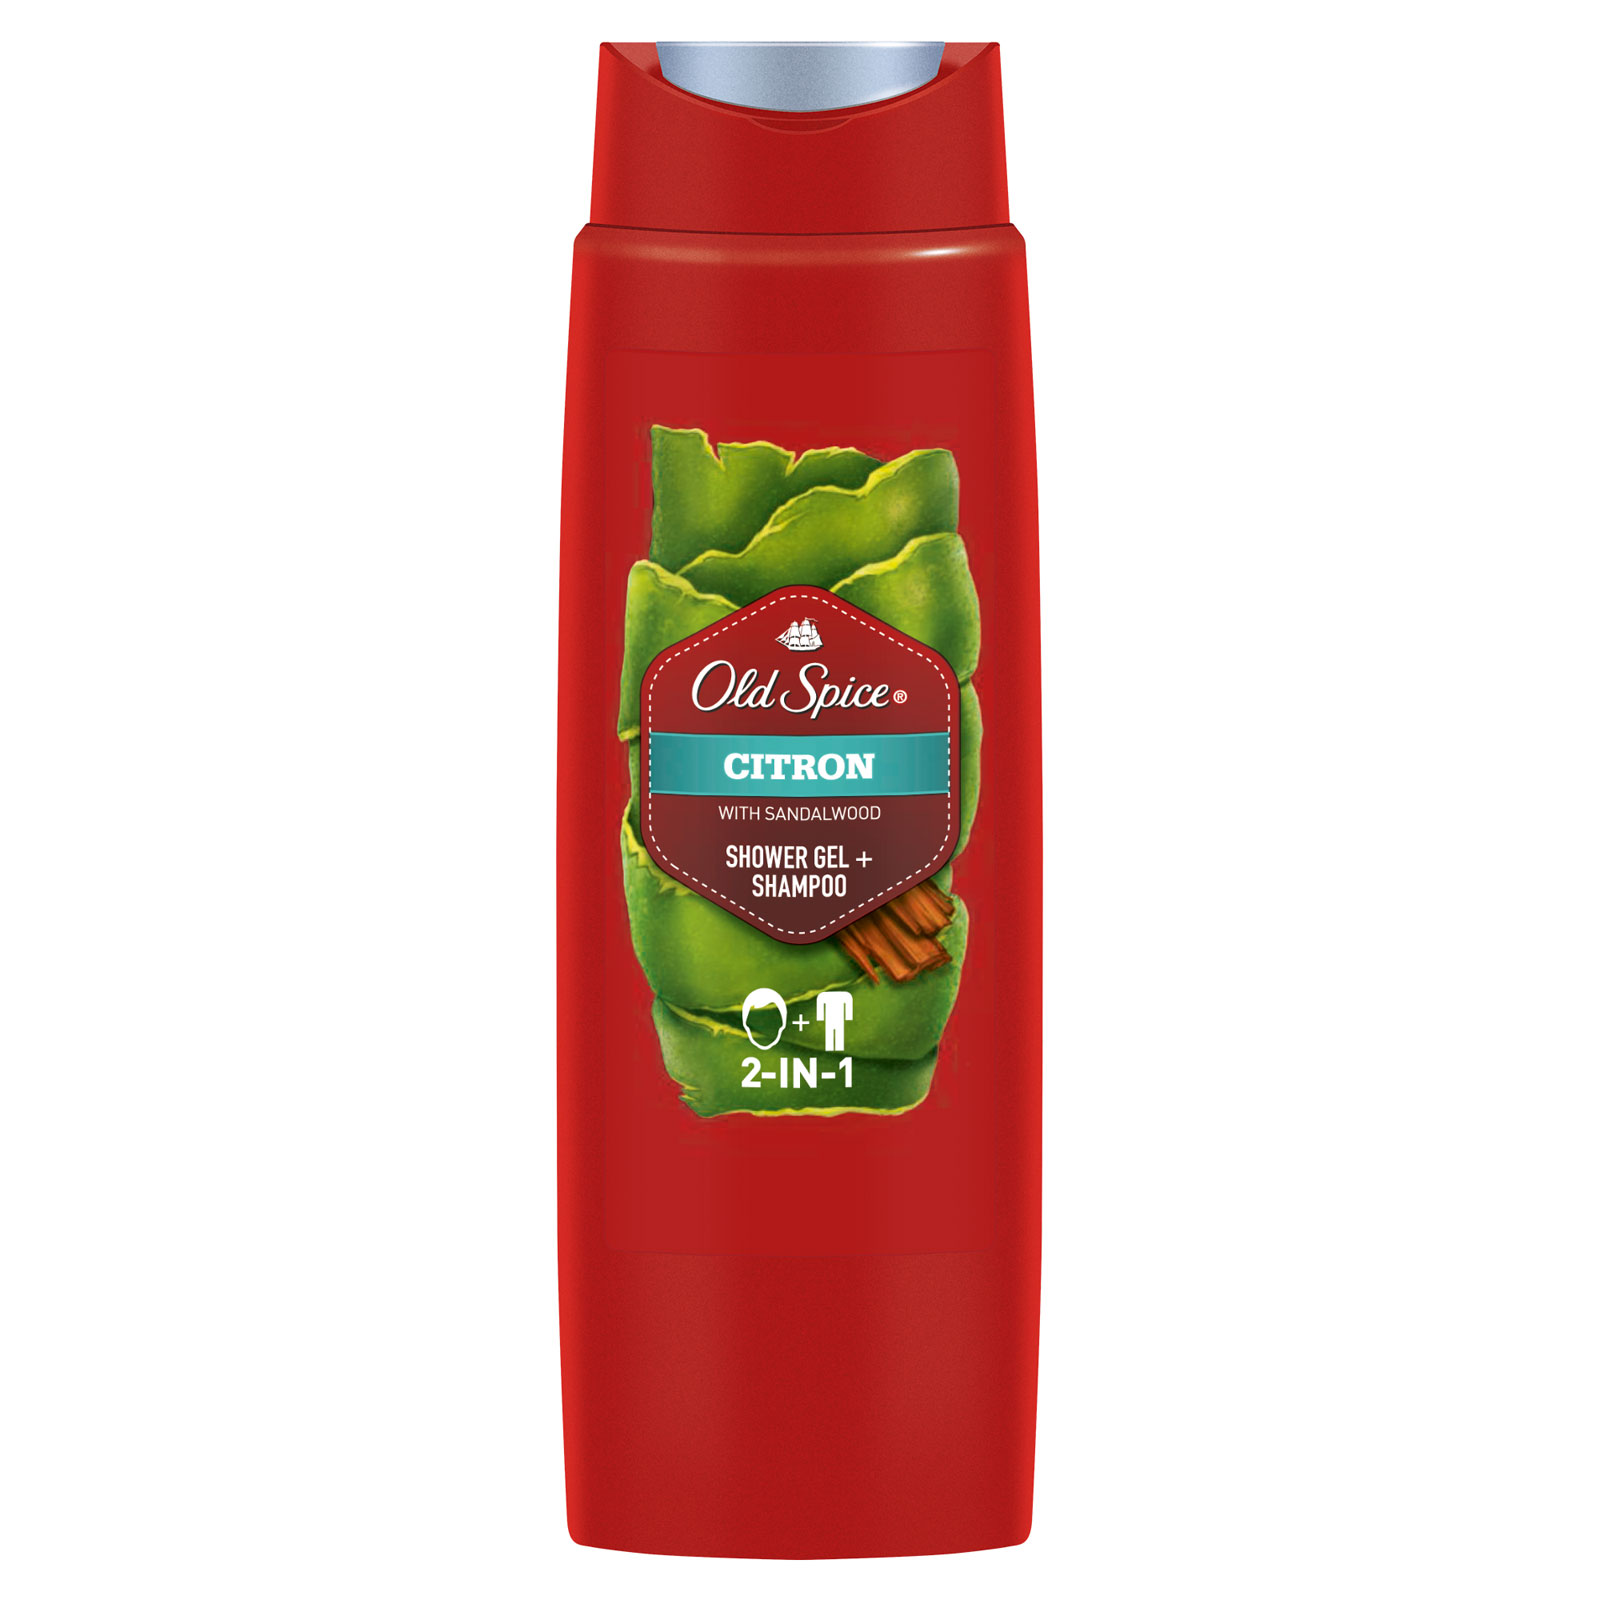 ���� ��� ���� Old Spice 2�1 Citron 250�� (���� � �������)